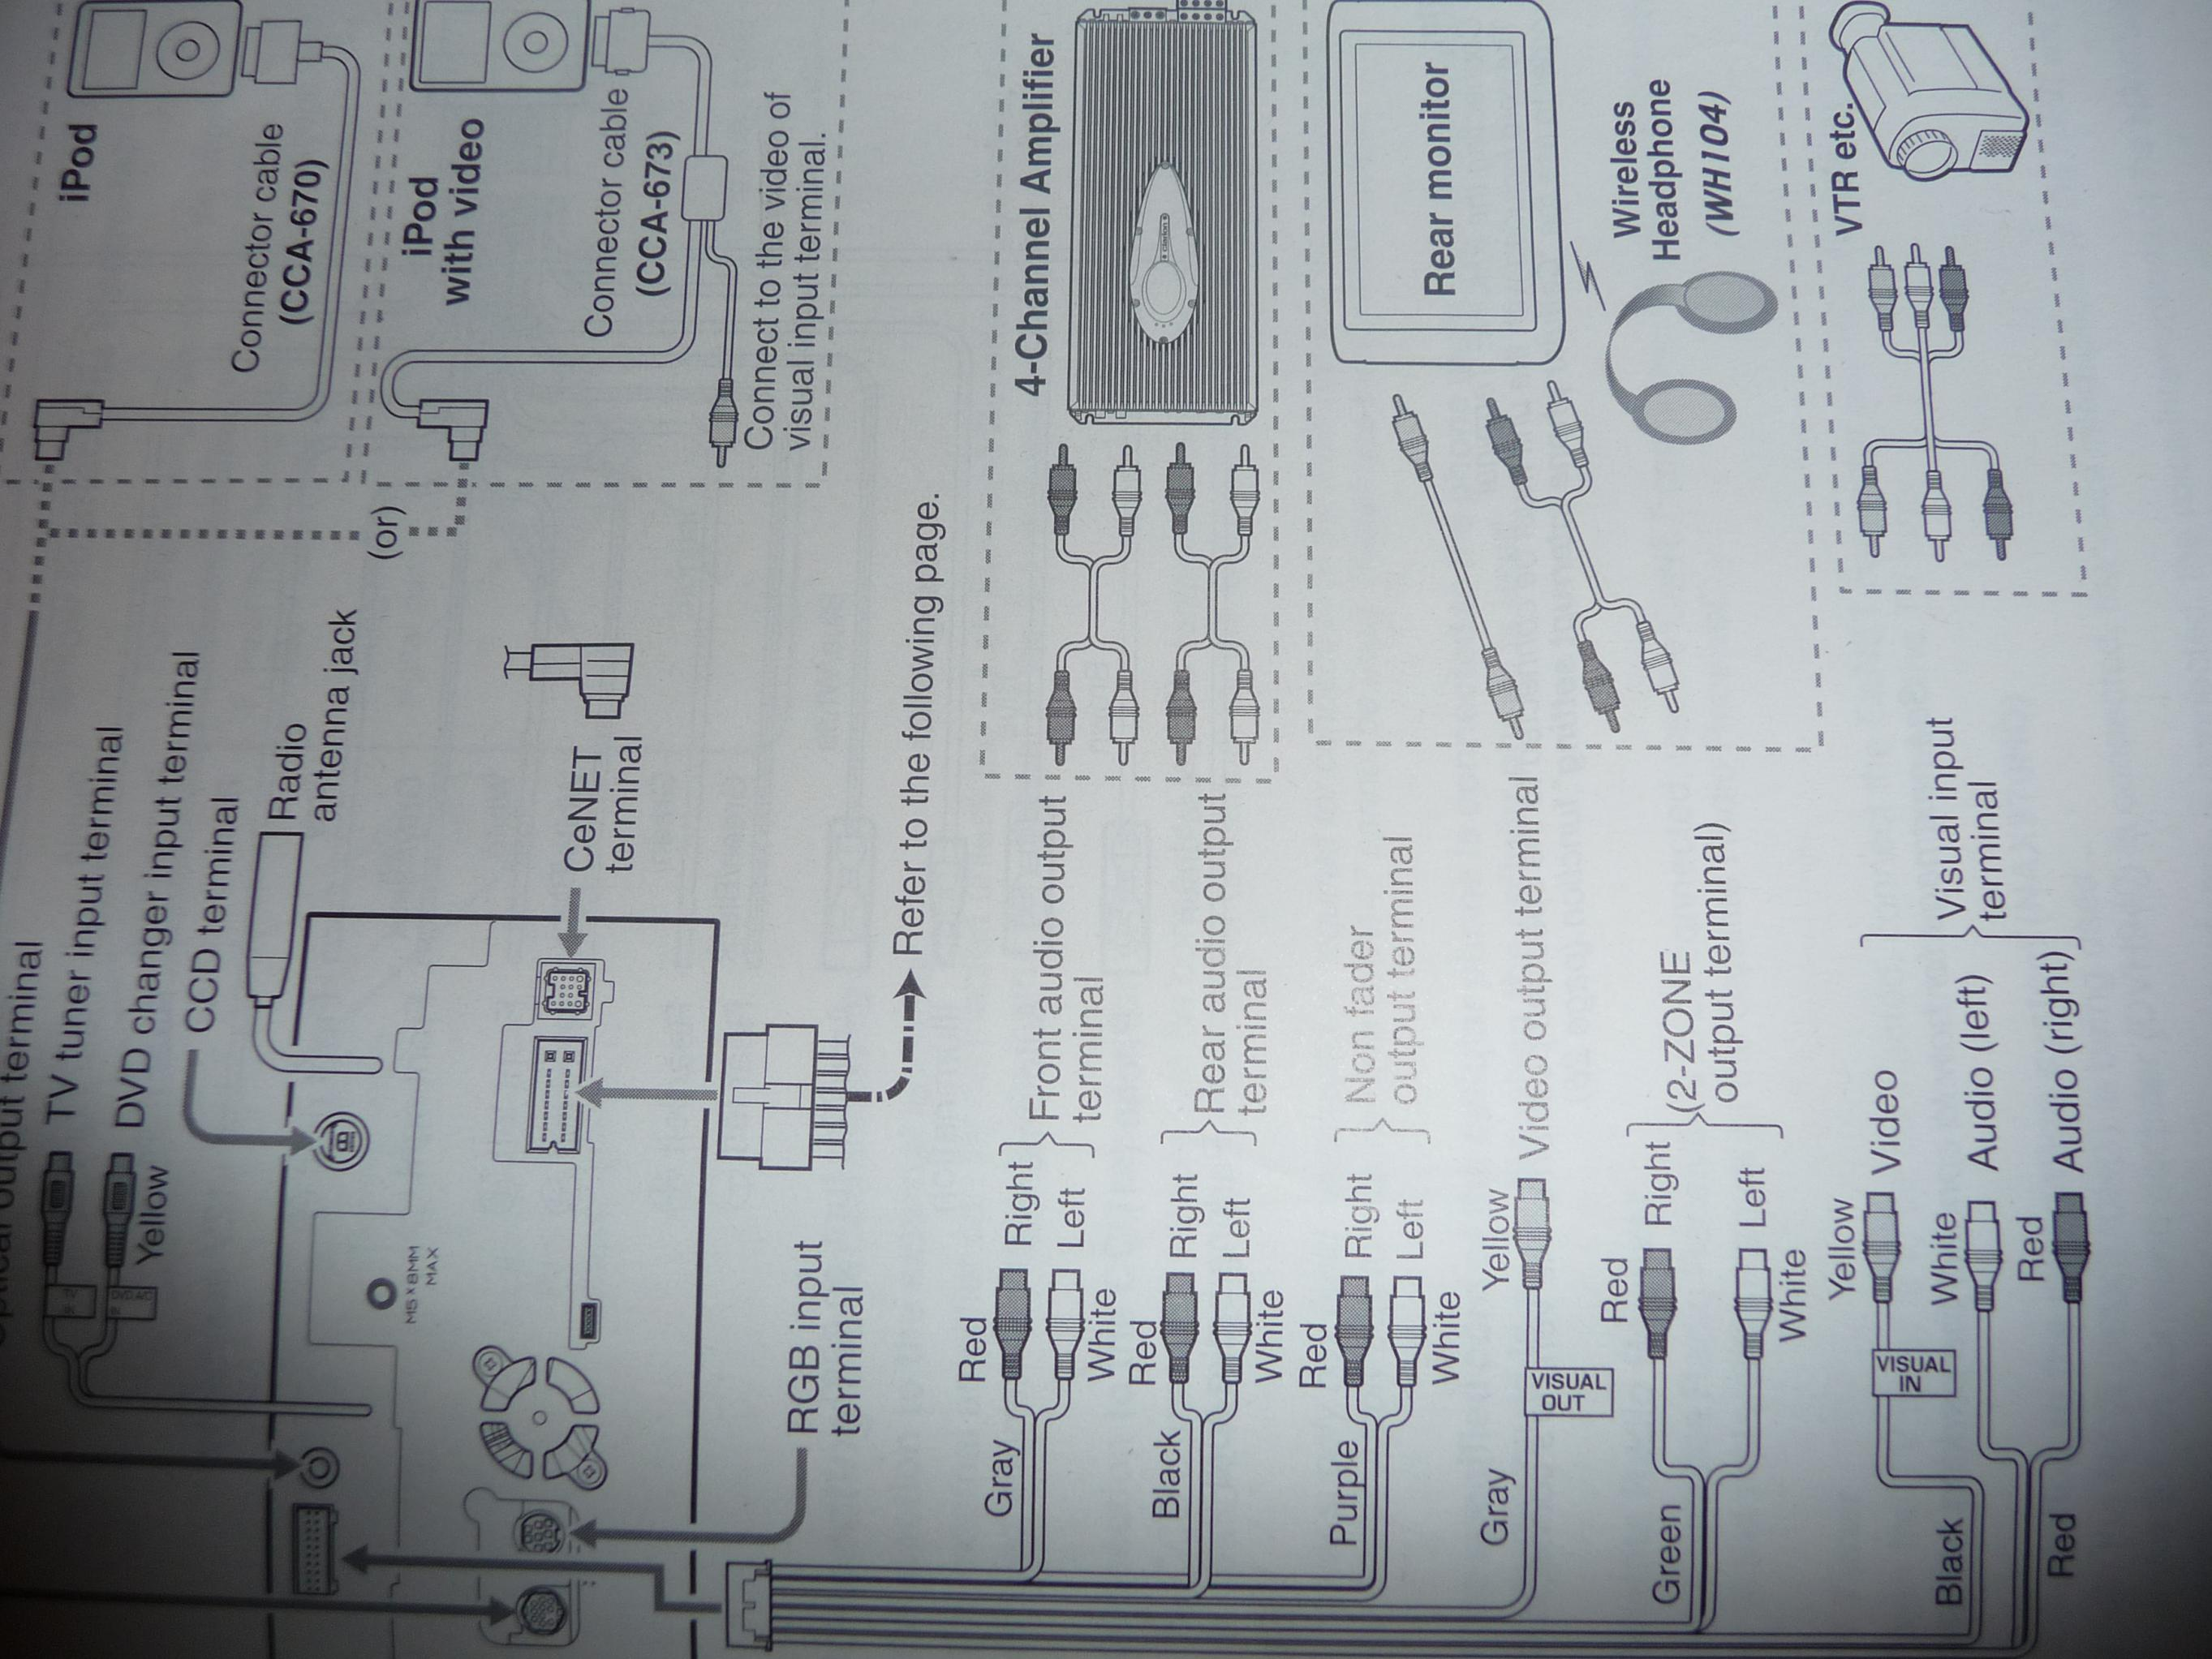 Clarion Max675vd Wiring Rca Diagram - Trusted Wiring Diagram